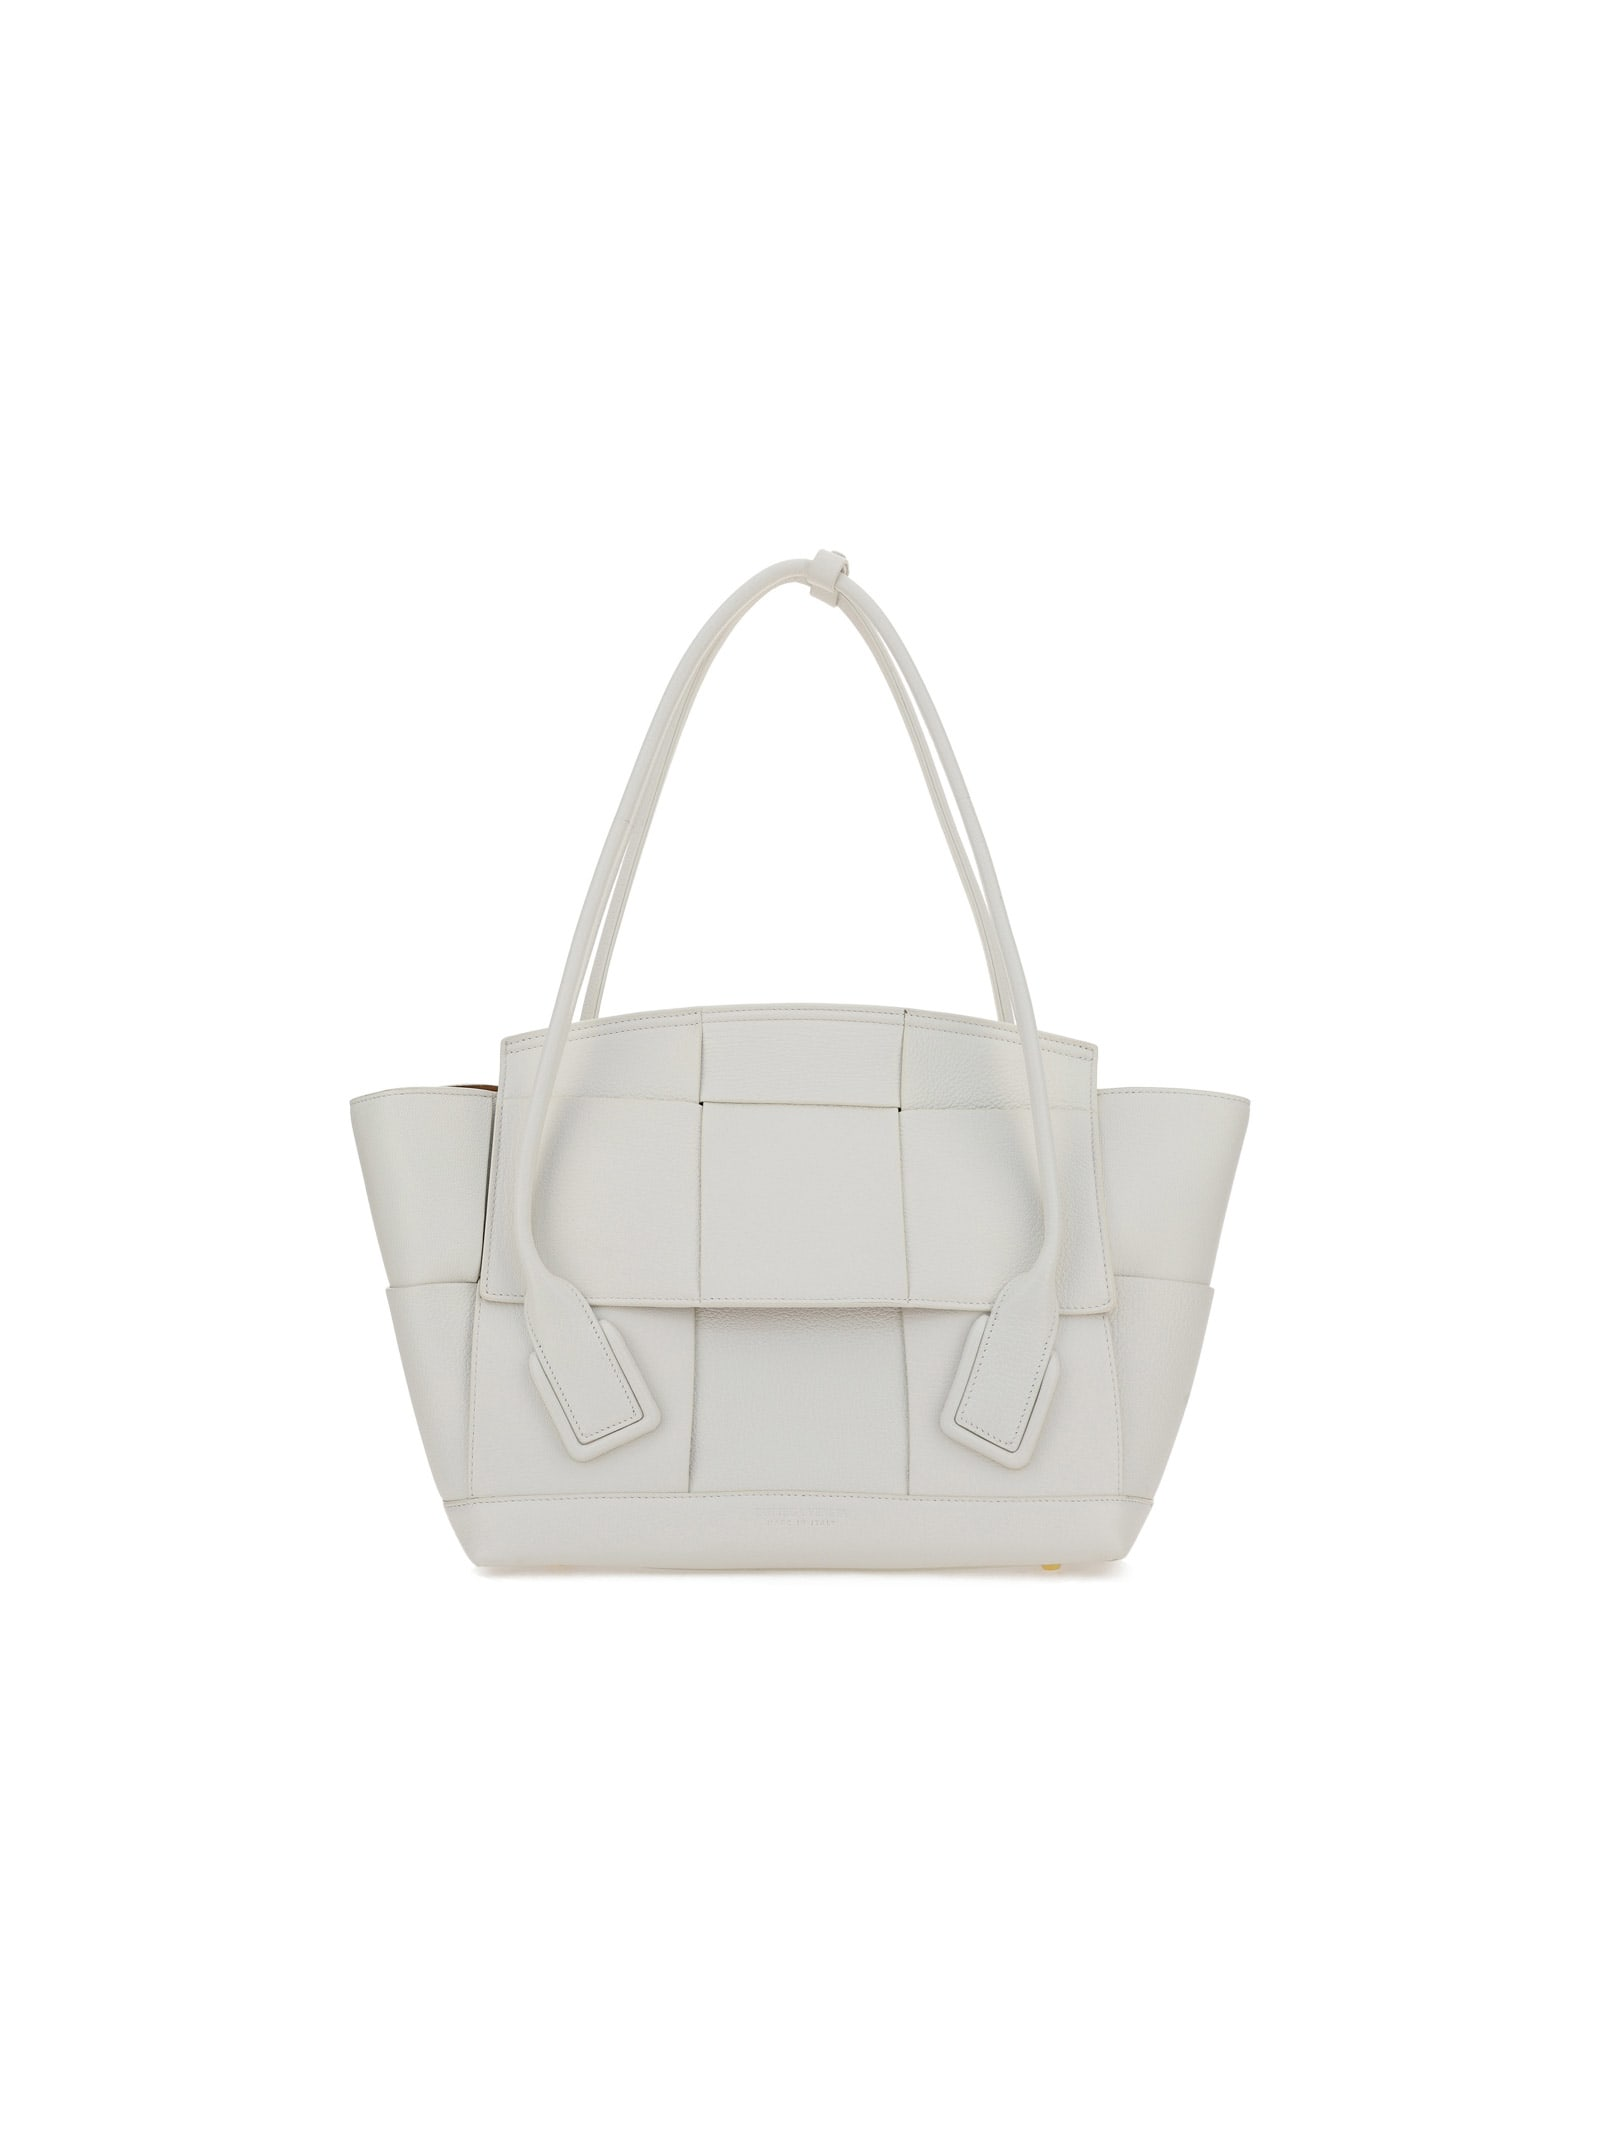 Bottega Veneta MEDIUM ARCO BAG